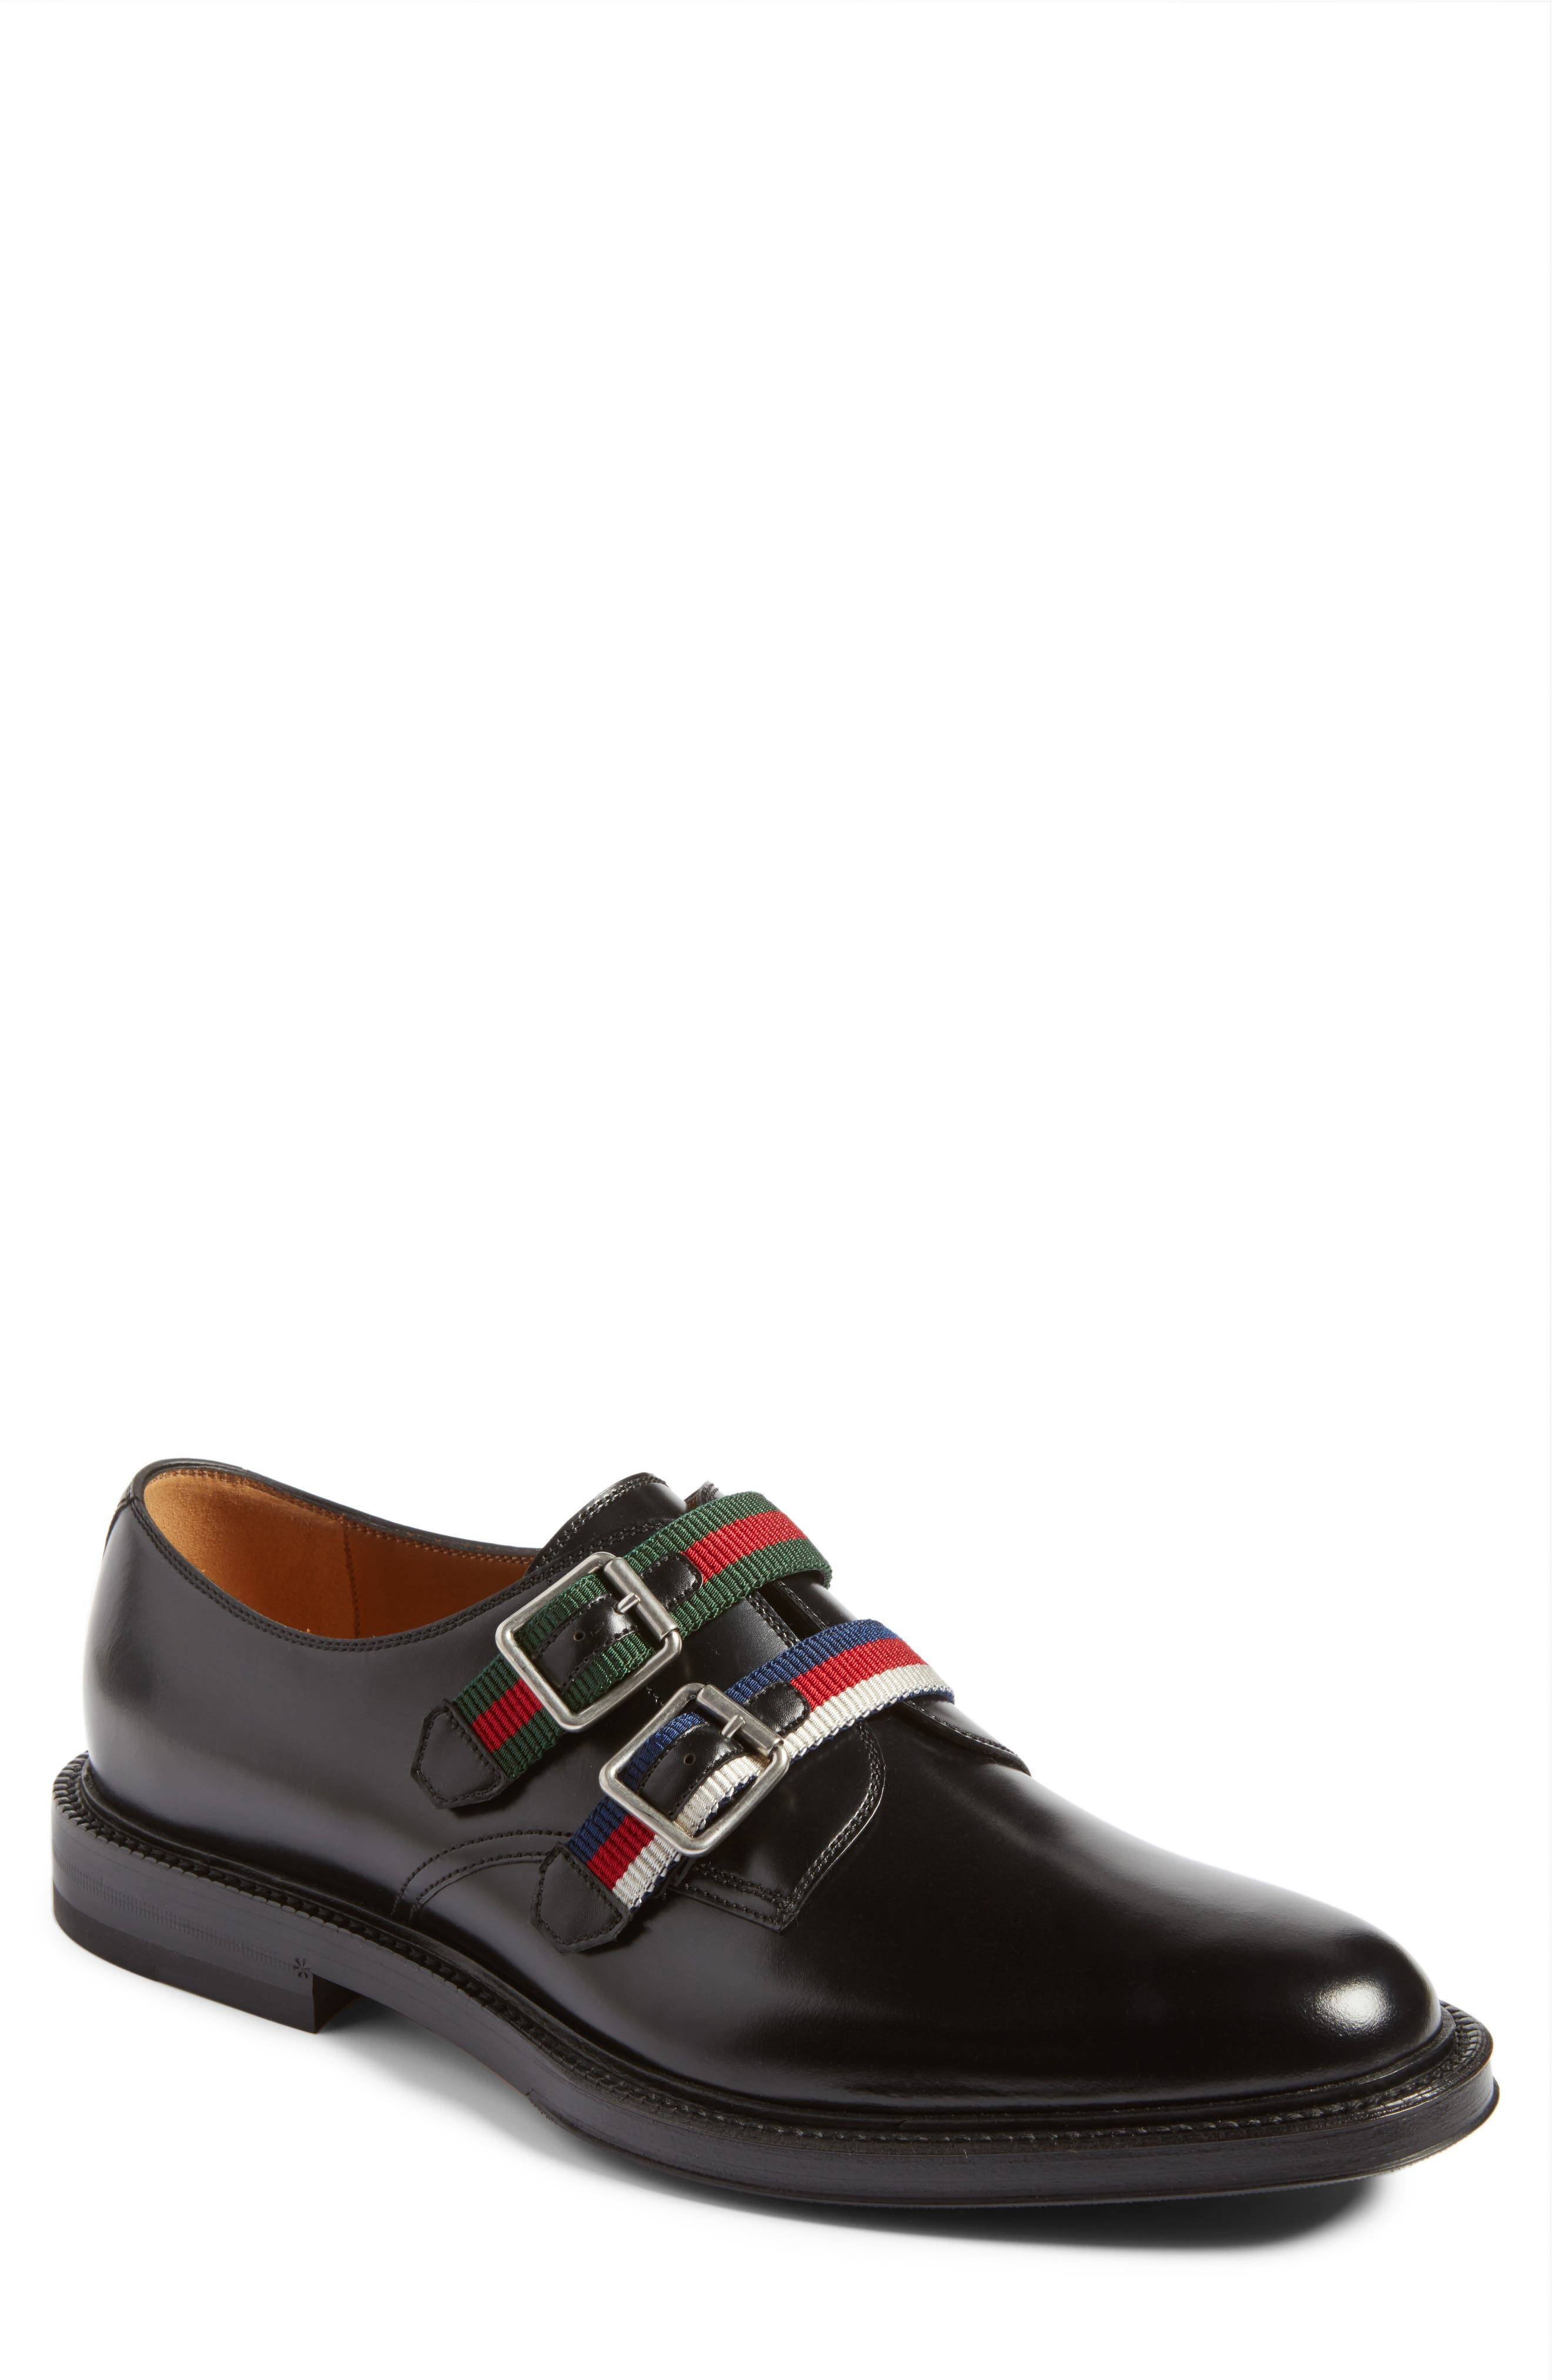 Beyond Belted Derby,                         Main,                         color, Nero